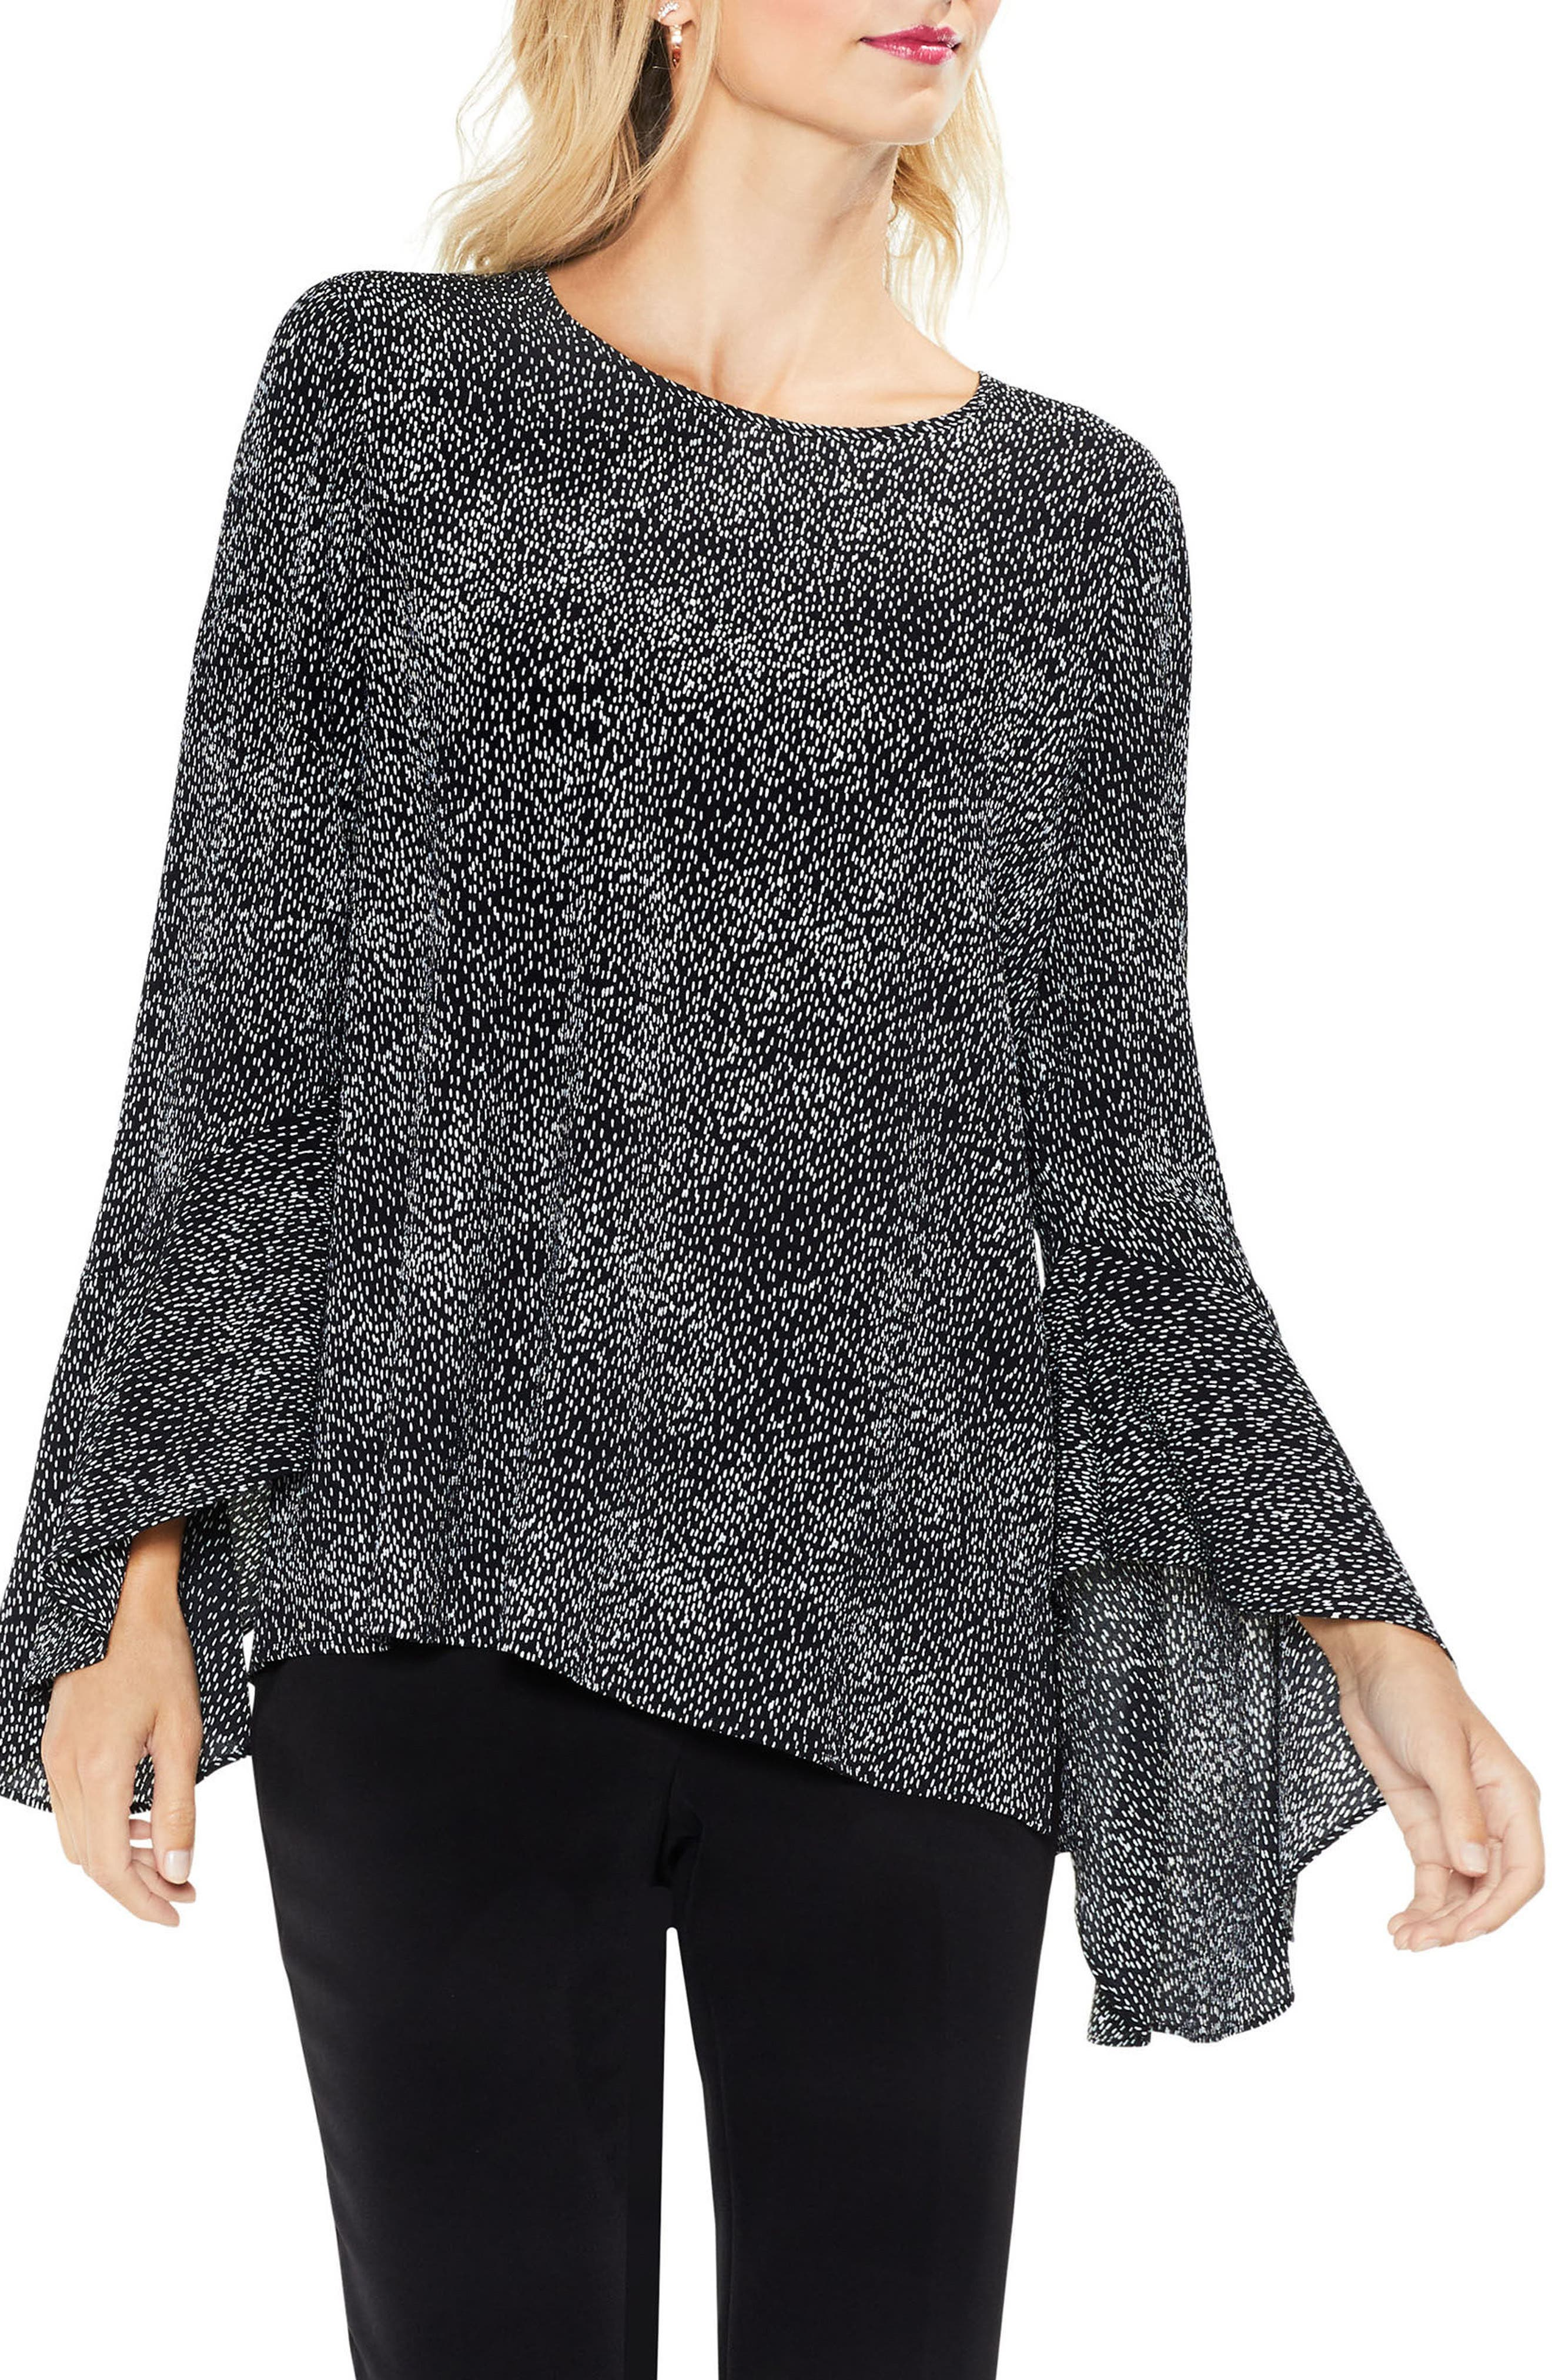 Bell Sleeve Dashes Top,                         Main,                         color, 010